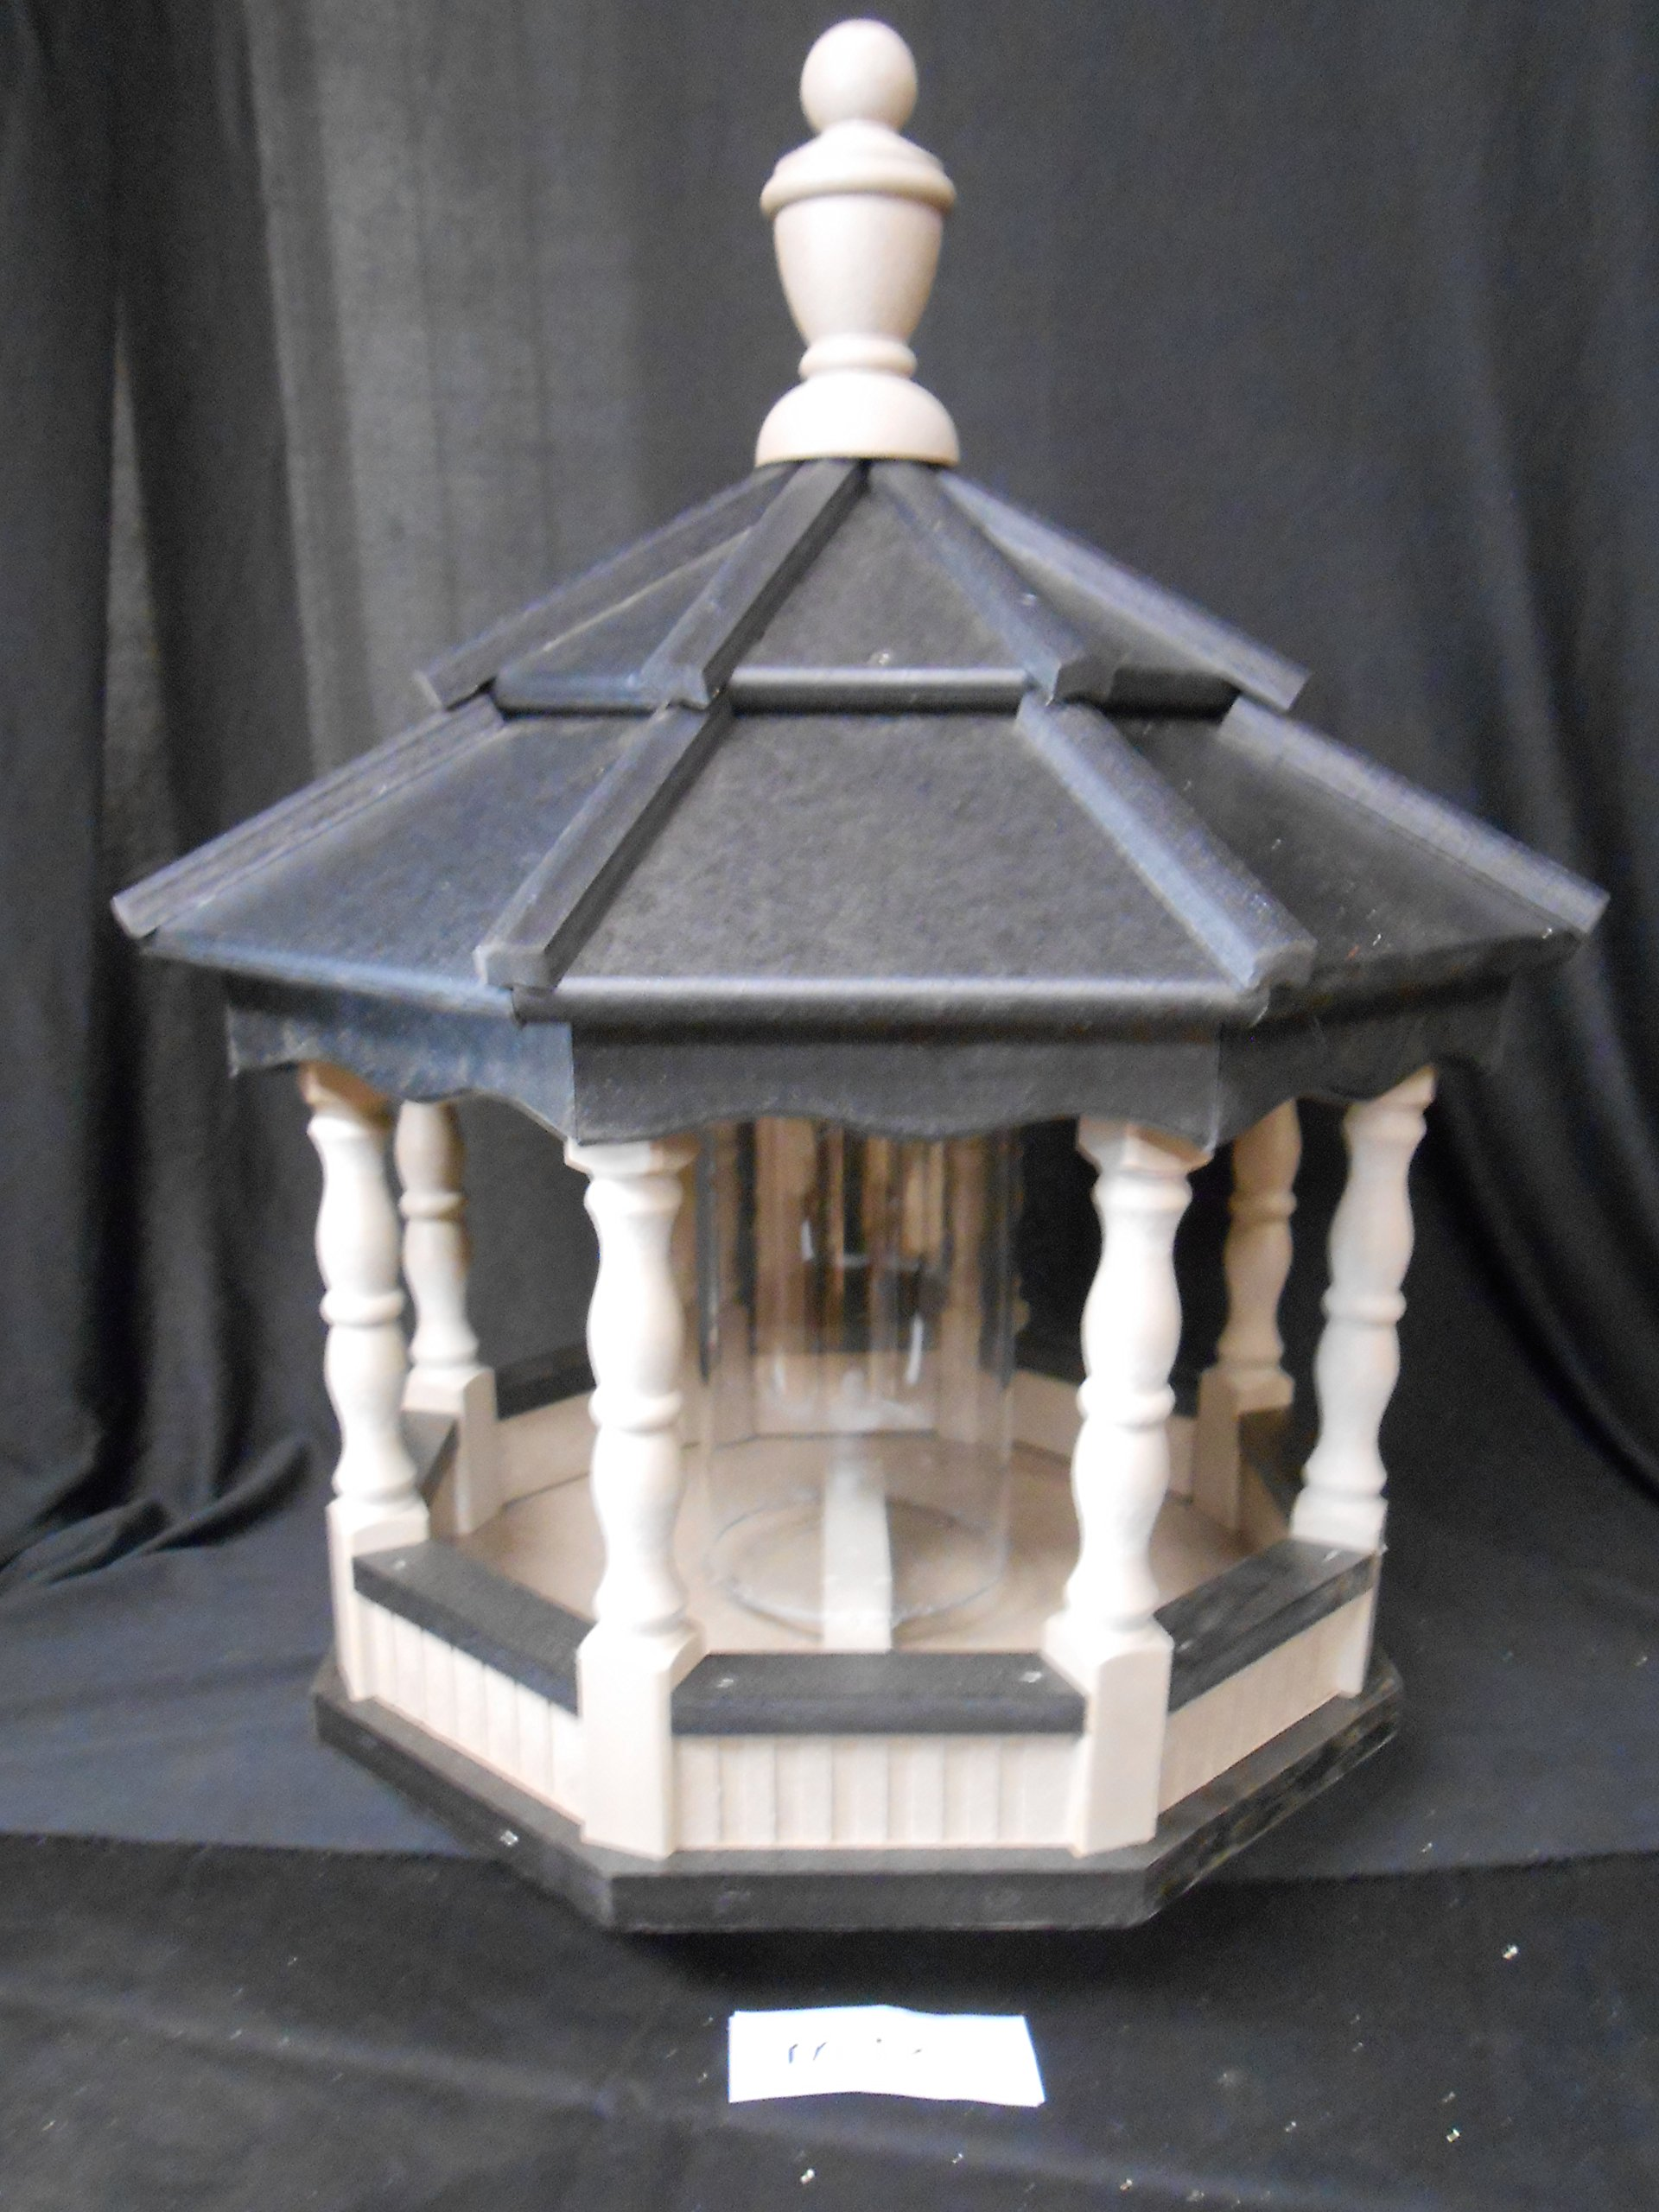 Medium Poly Bird Feeder Amish Spindle Gazebo Handcrafted Homemade Clay & Black Roof